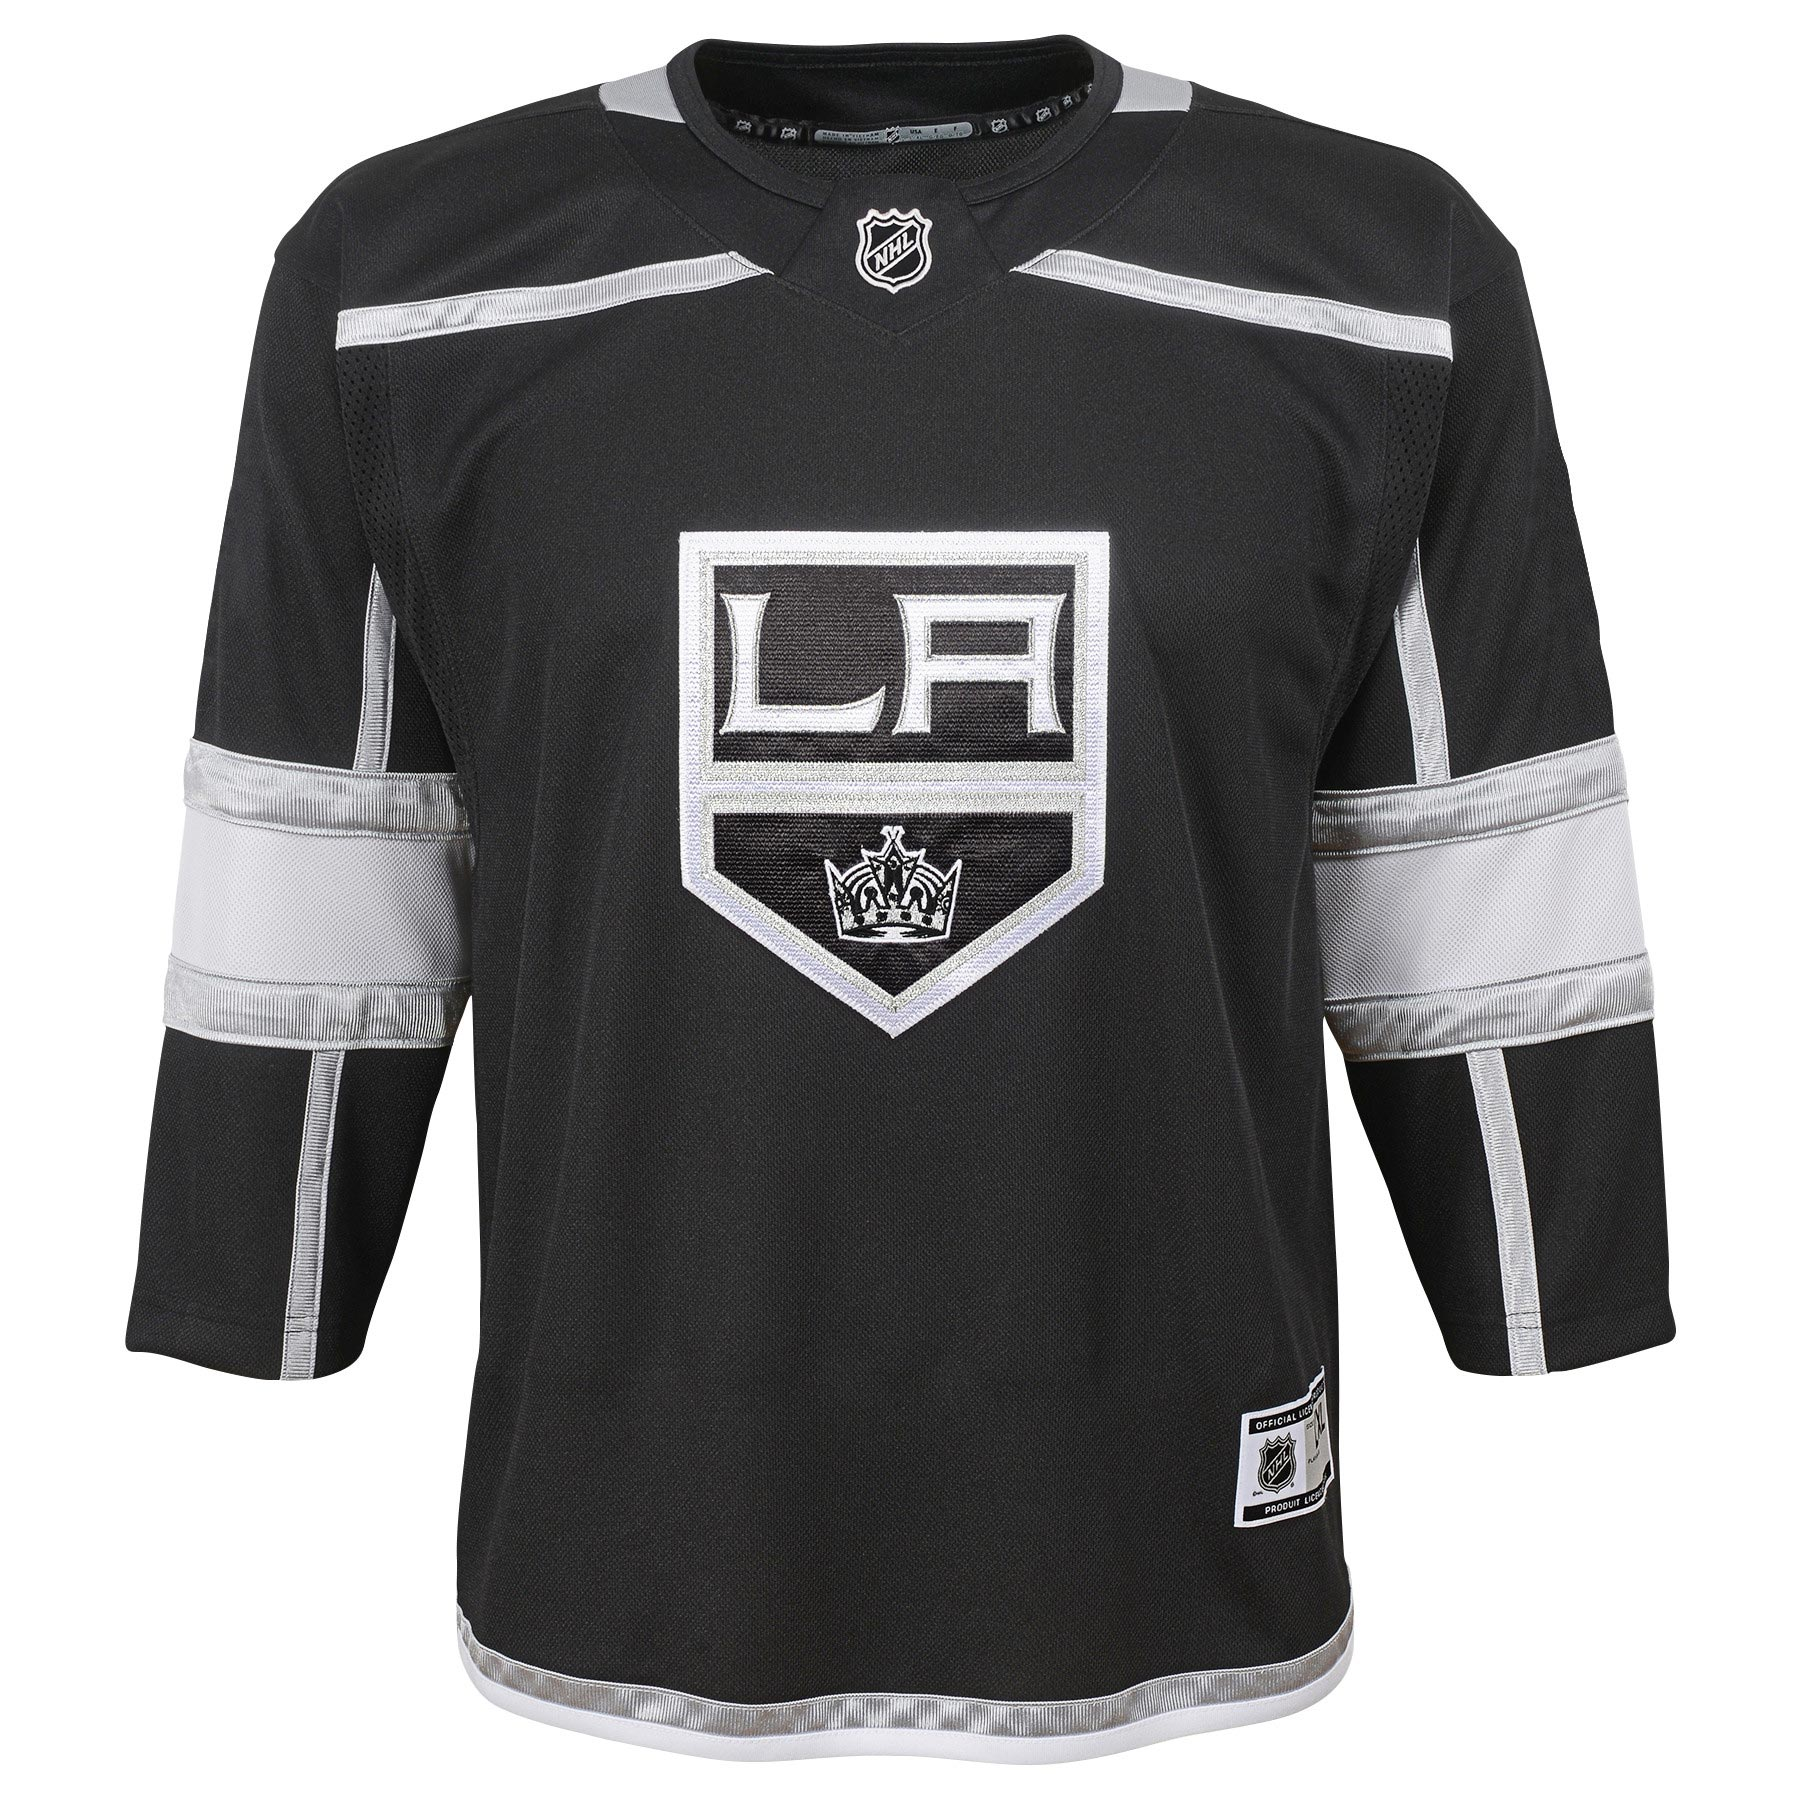 d6586385496 ... new arrivals los angeles kings nhl premier youth replica home hockey jersey  nhl team apparel 76ddc